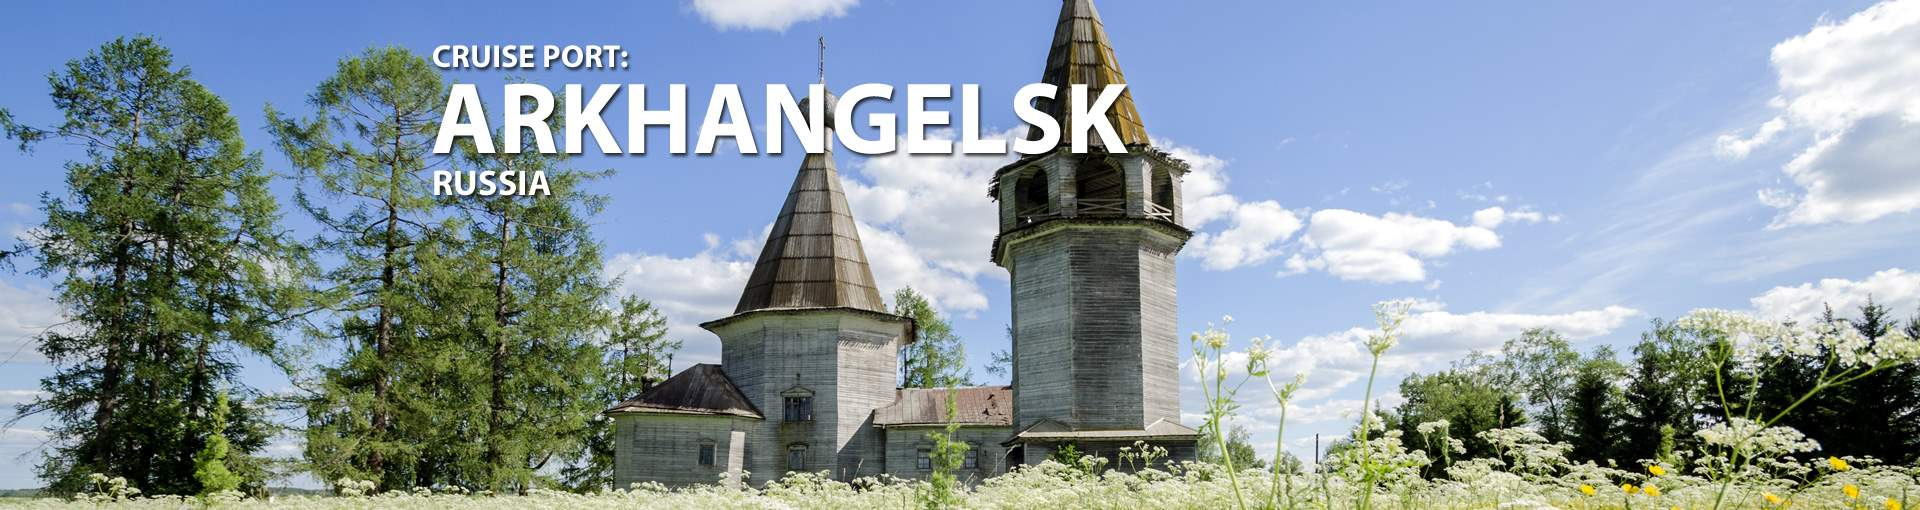 Cruises to Arkhangelsk, Russia